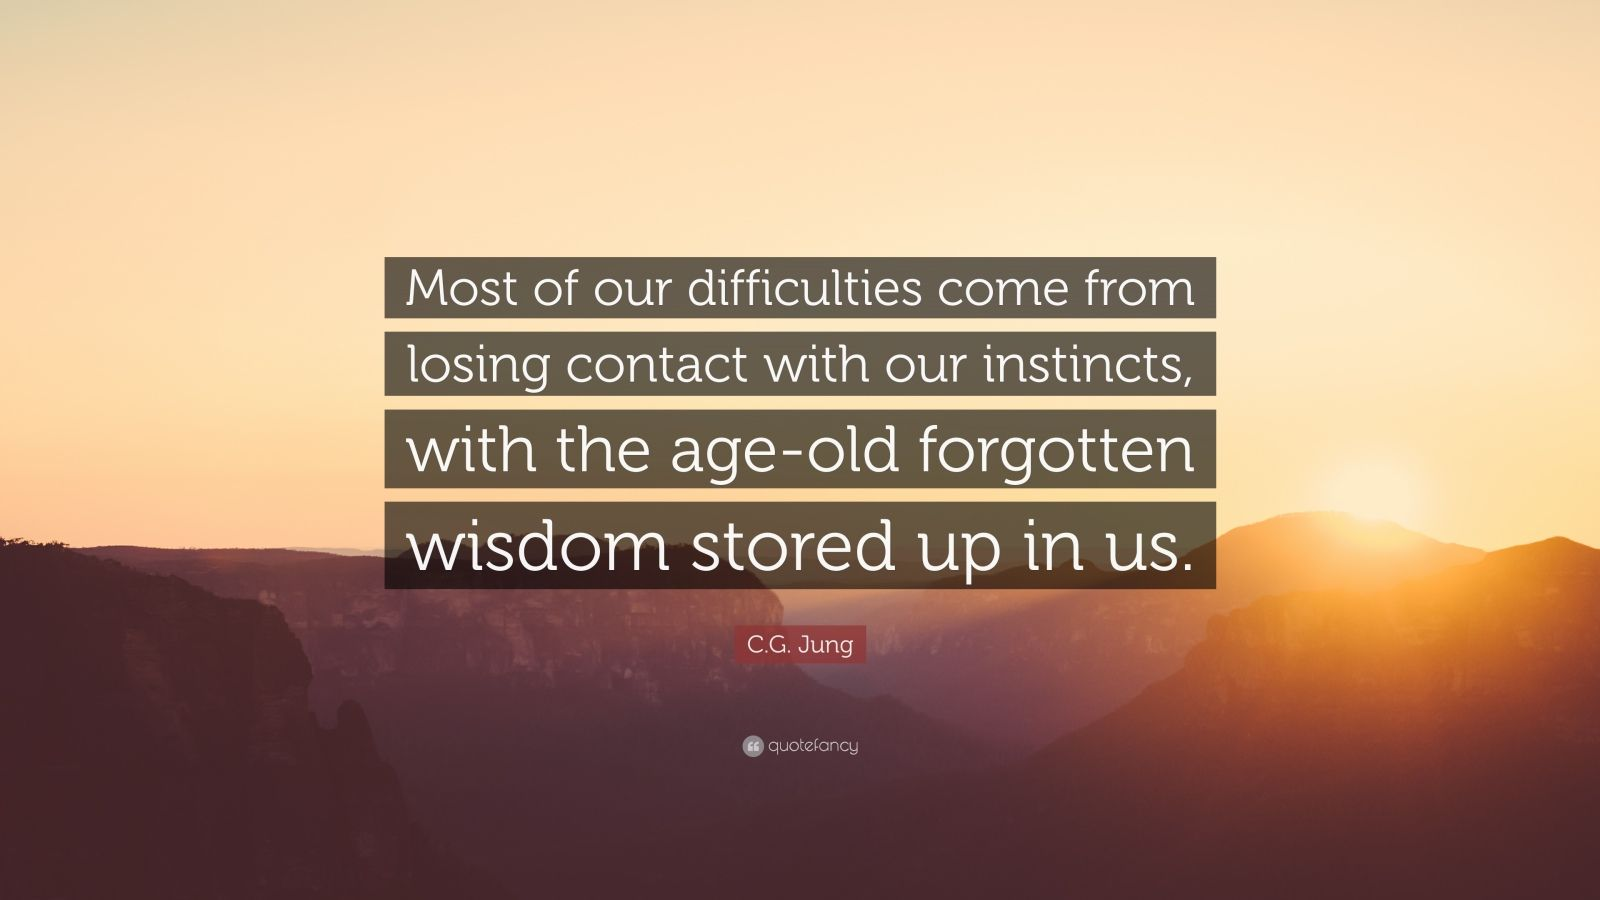 """C.G. Jung Quote: """"Most of our difficulties come from losing contact with our instincts, with the age-old forgotten wisdom stored up in us."""""""